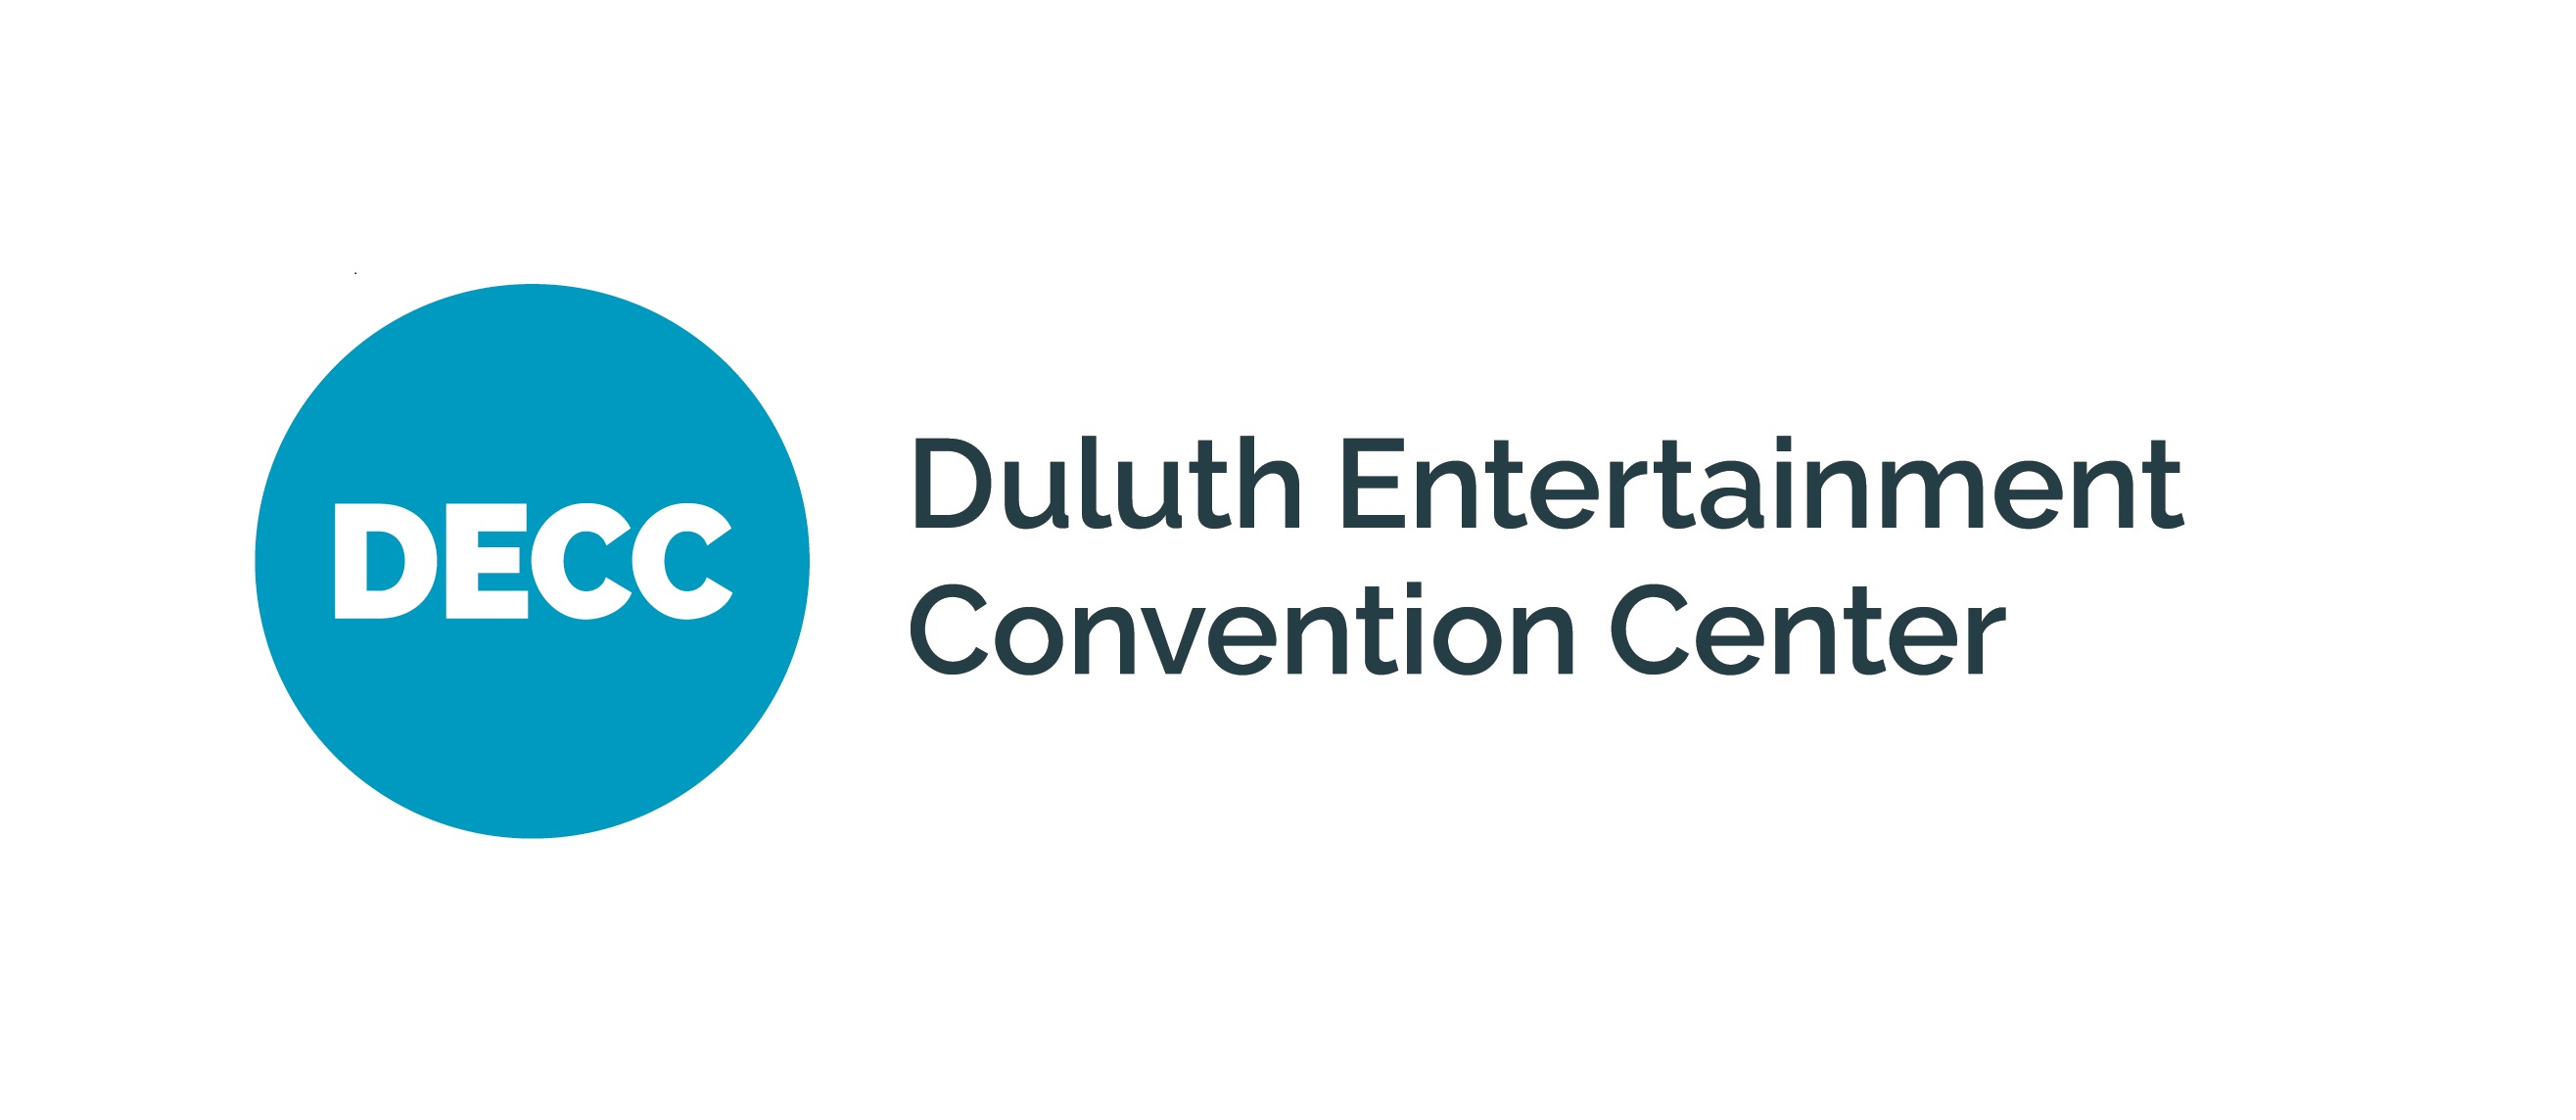 Duluth Entertainment Convention Center